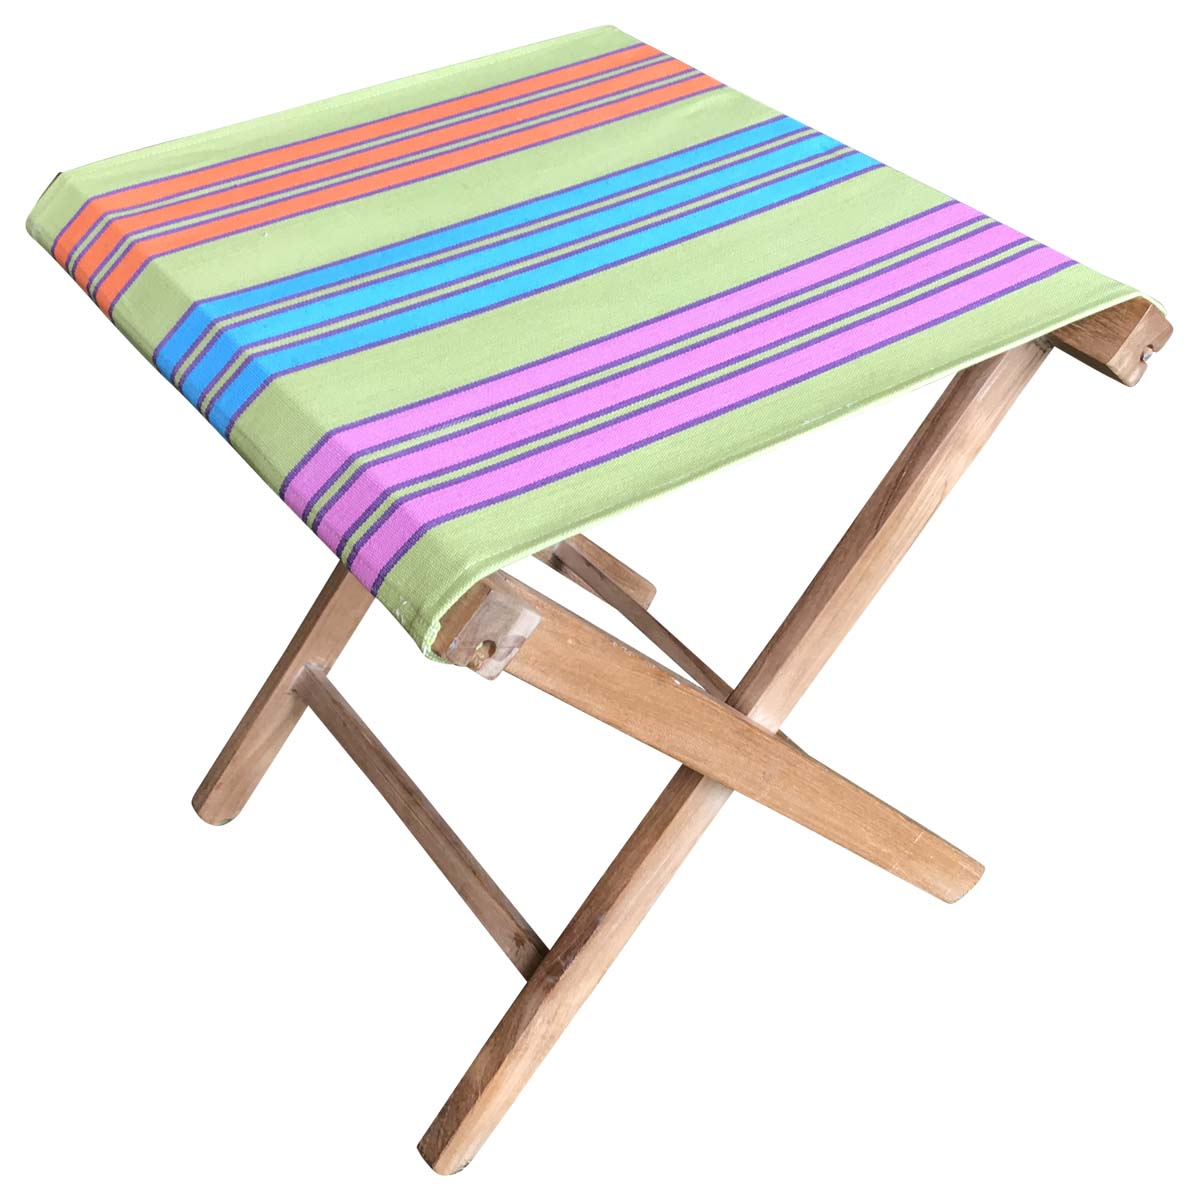 Portable Folding Stool with green, turquoise, pink stripe seat